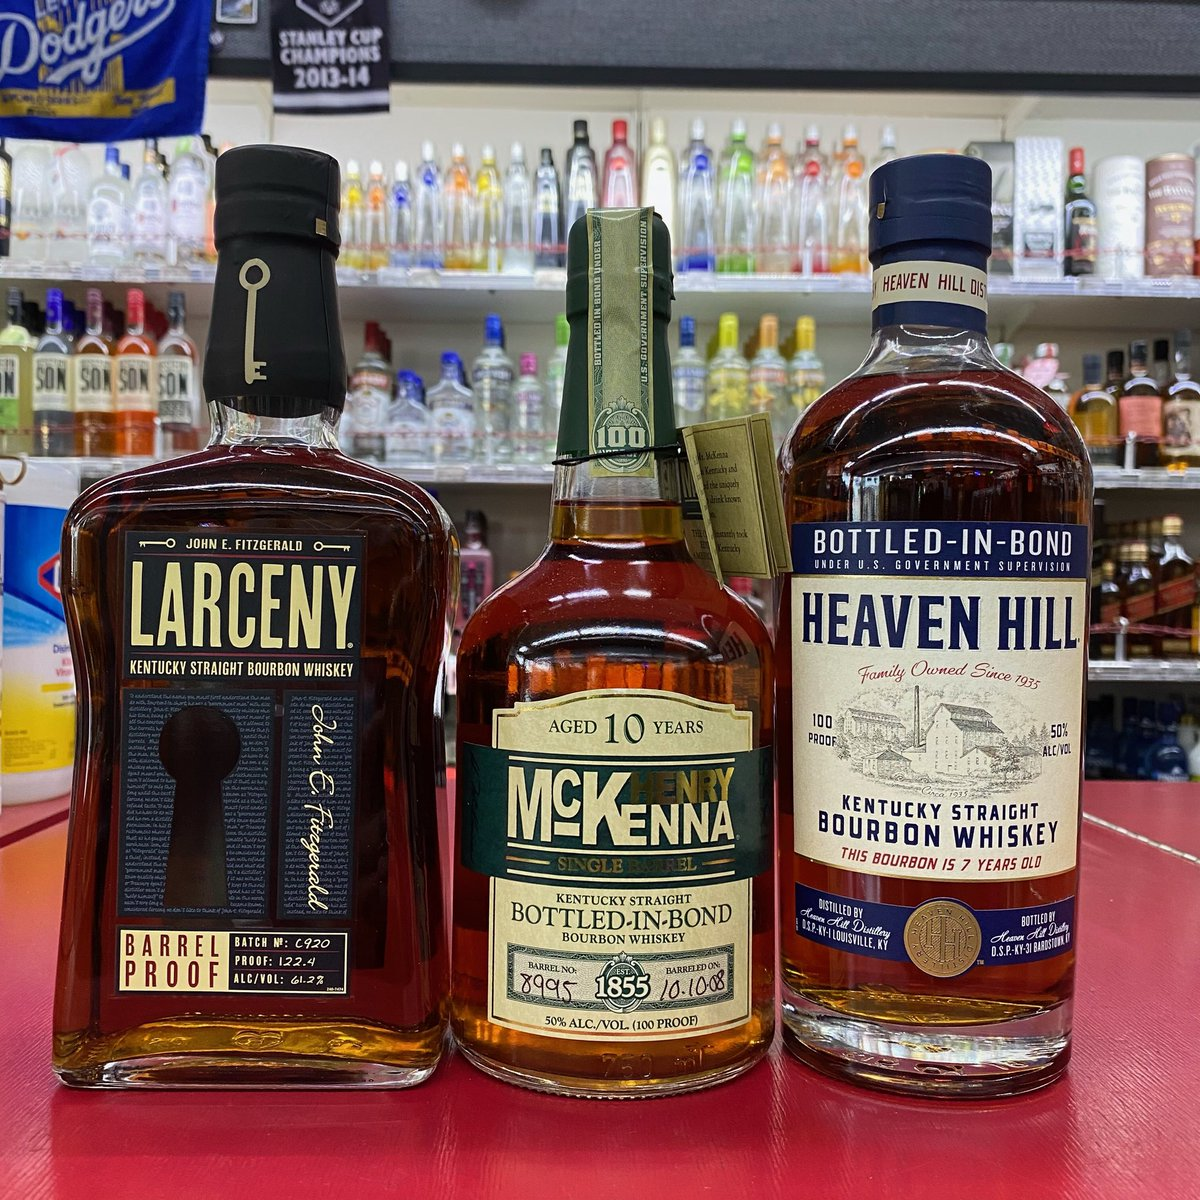 Just landed! Call store for pricing and details. Very limited amount! @larcenybourbon #henrymckenna #singlebarrel @heavenhilldistillery #100proof #bourbon #whiskey #kentuckystraightbourbonwhiskey #bottleshop #3tenliquor #shoplocal #cheers https://t.co/Msj6lMcQaD